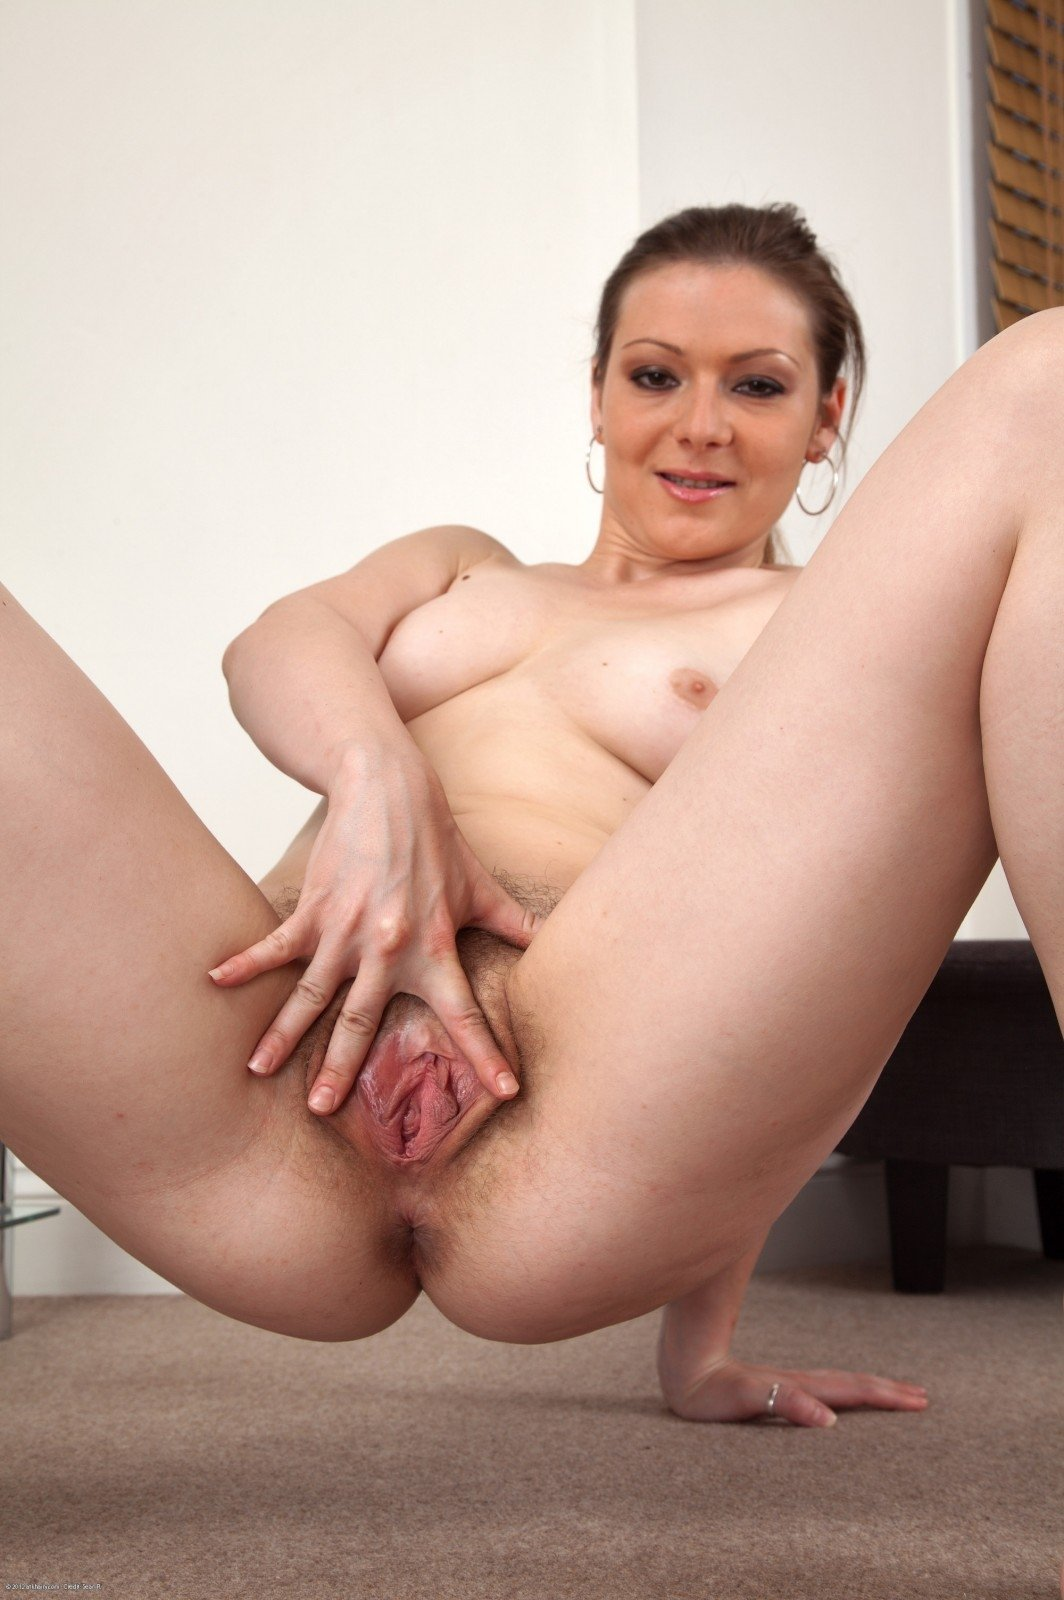 Young guy amateur milf homemade authoritative answer